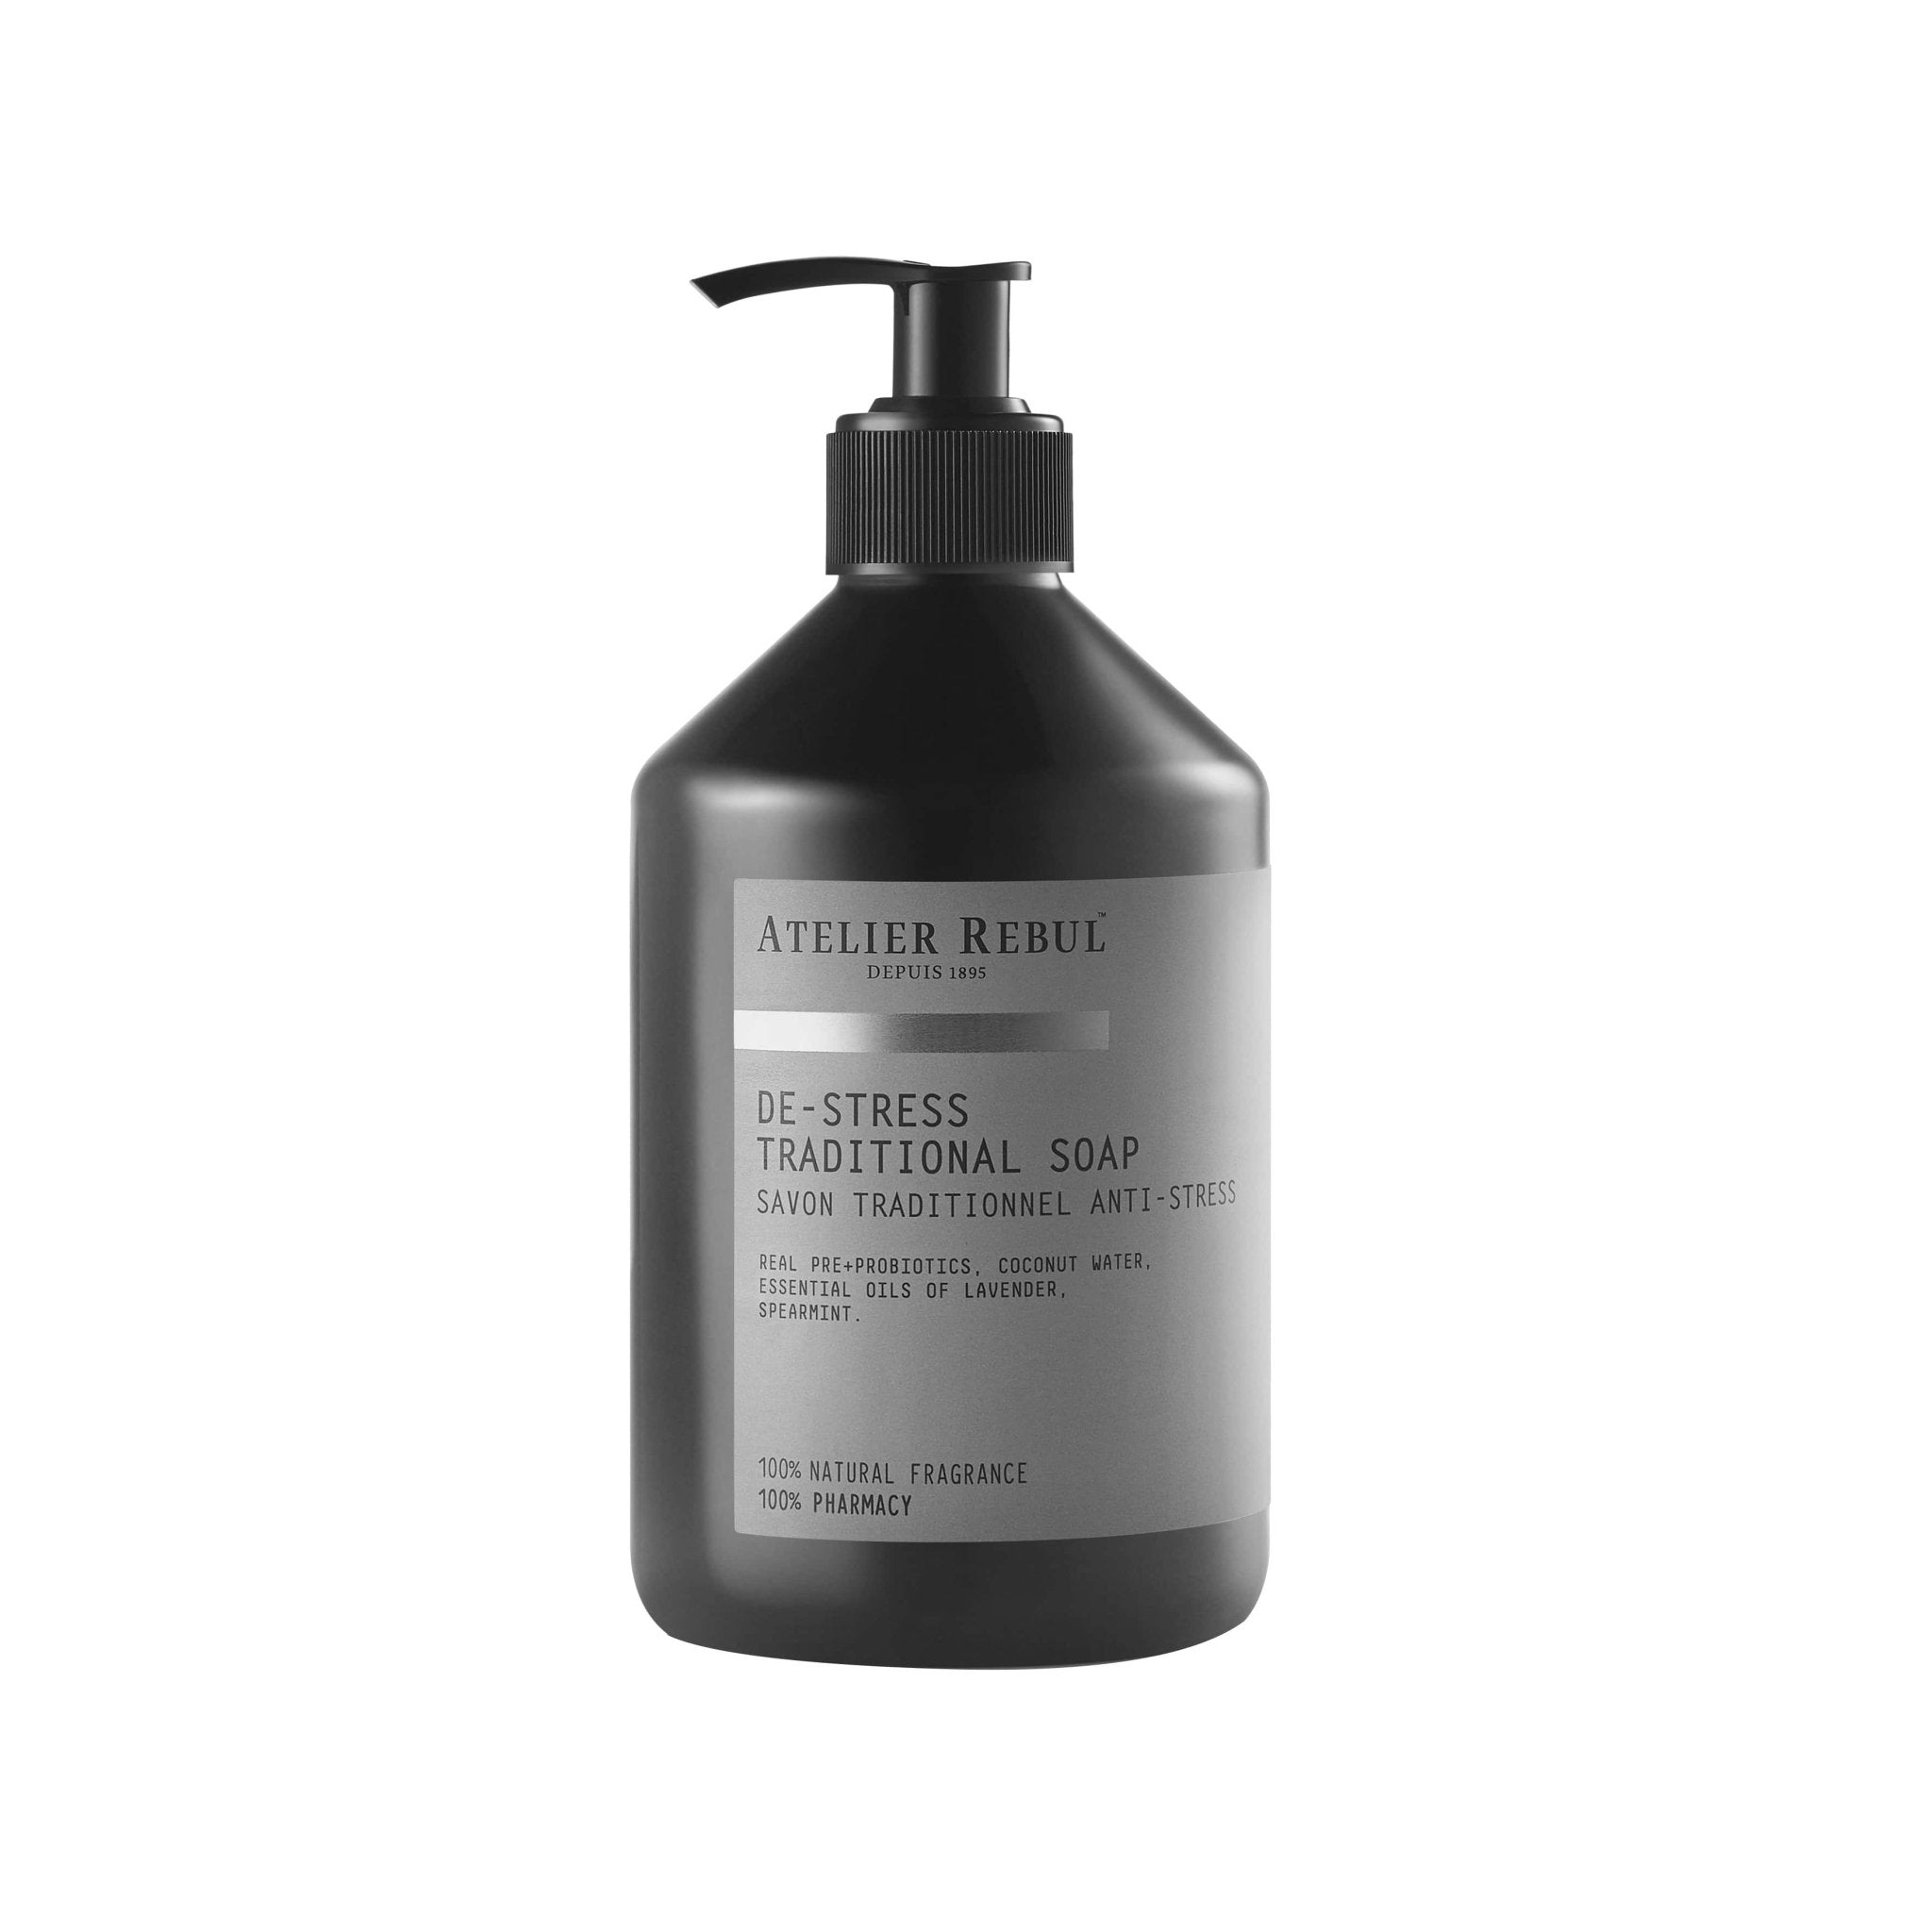 De-Stress Liquid Soap 250ml - Atelier Rebul